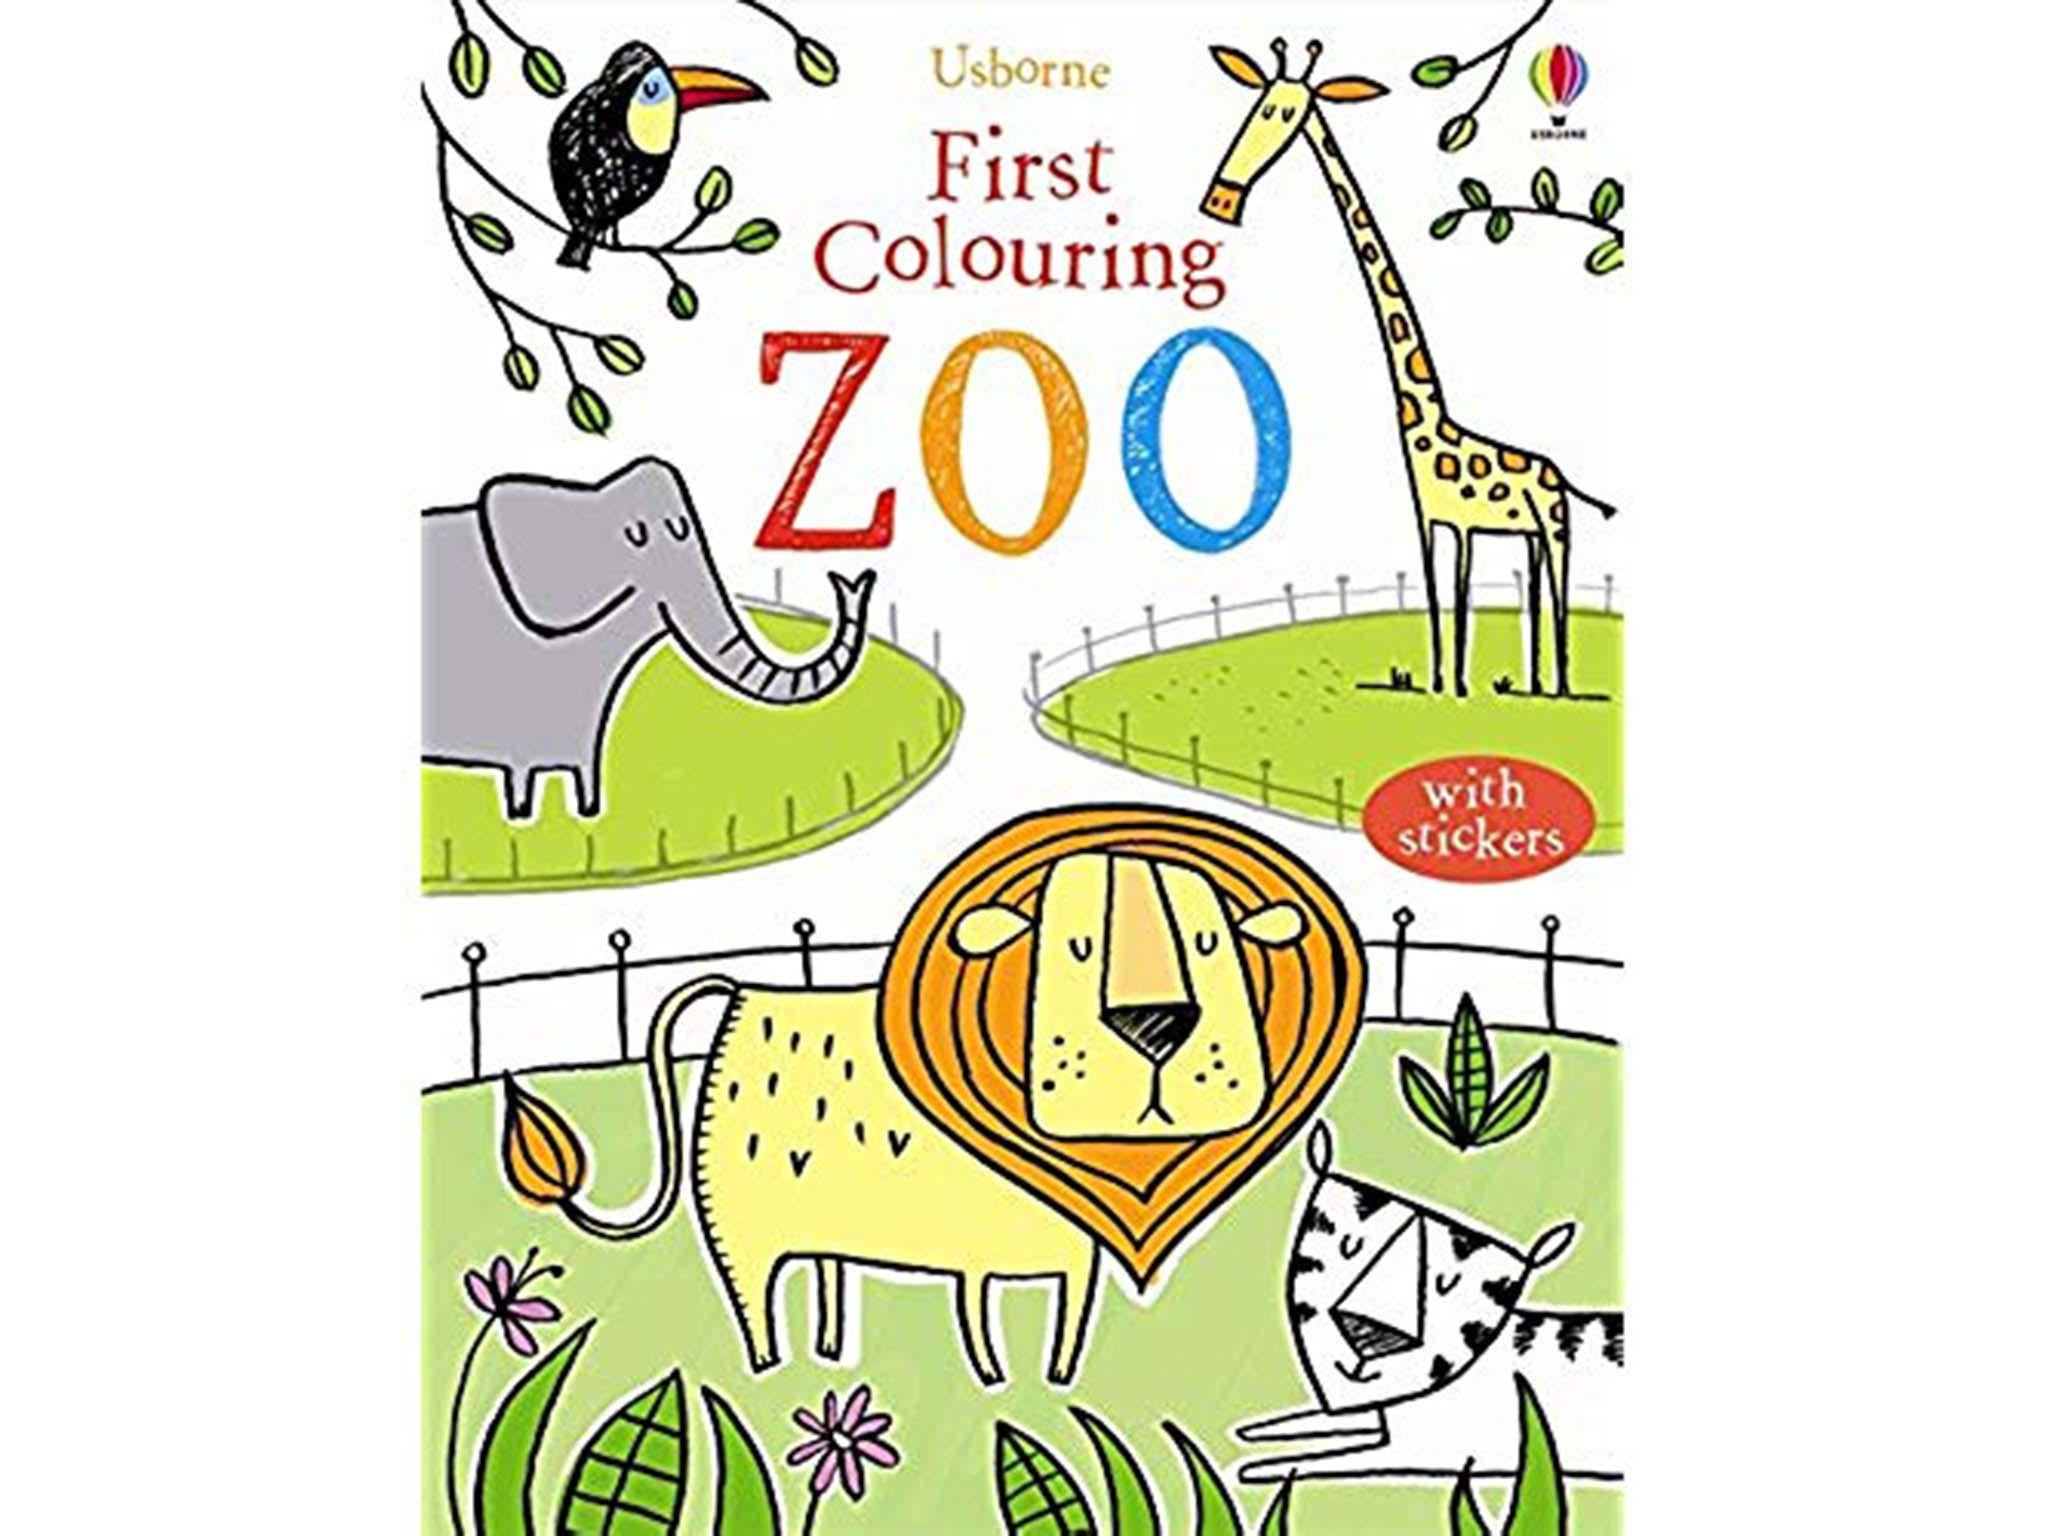 10 Best Colouring Books For Kids The Independent Bright Baby First 100 Numbers A Slim Volume With Seven Spreads Of Crowd Pleasing Animal Illustrations Very Young Artists As Soon They Can Hold Crayon Up To About Three